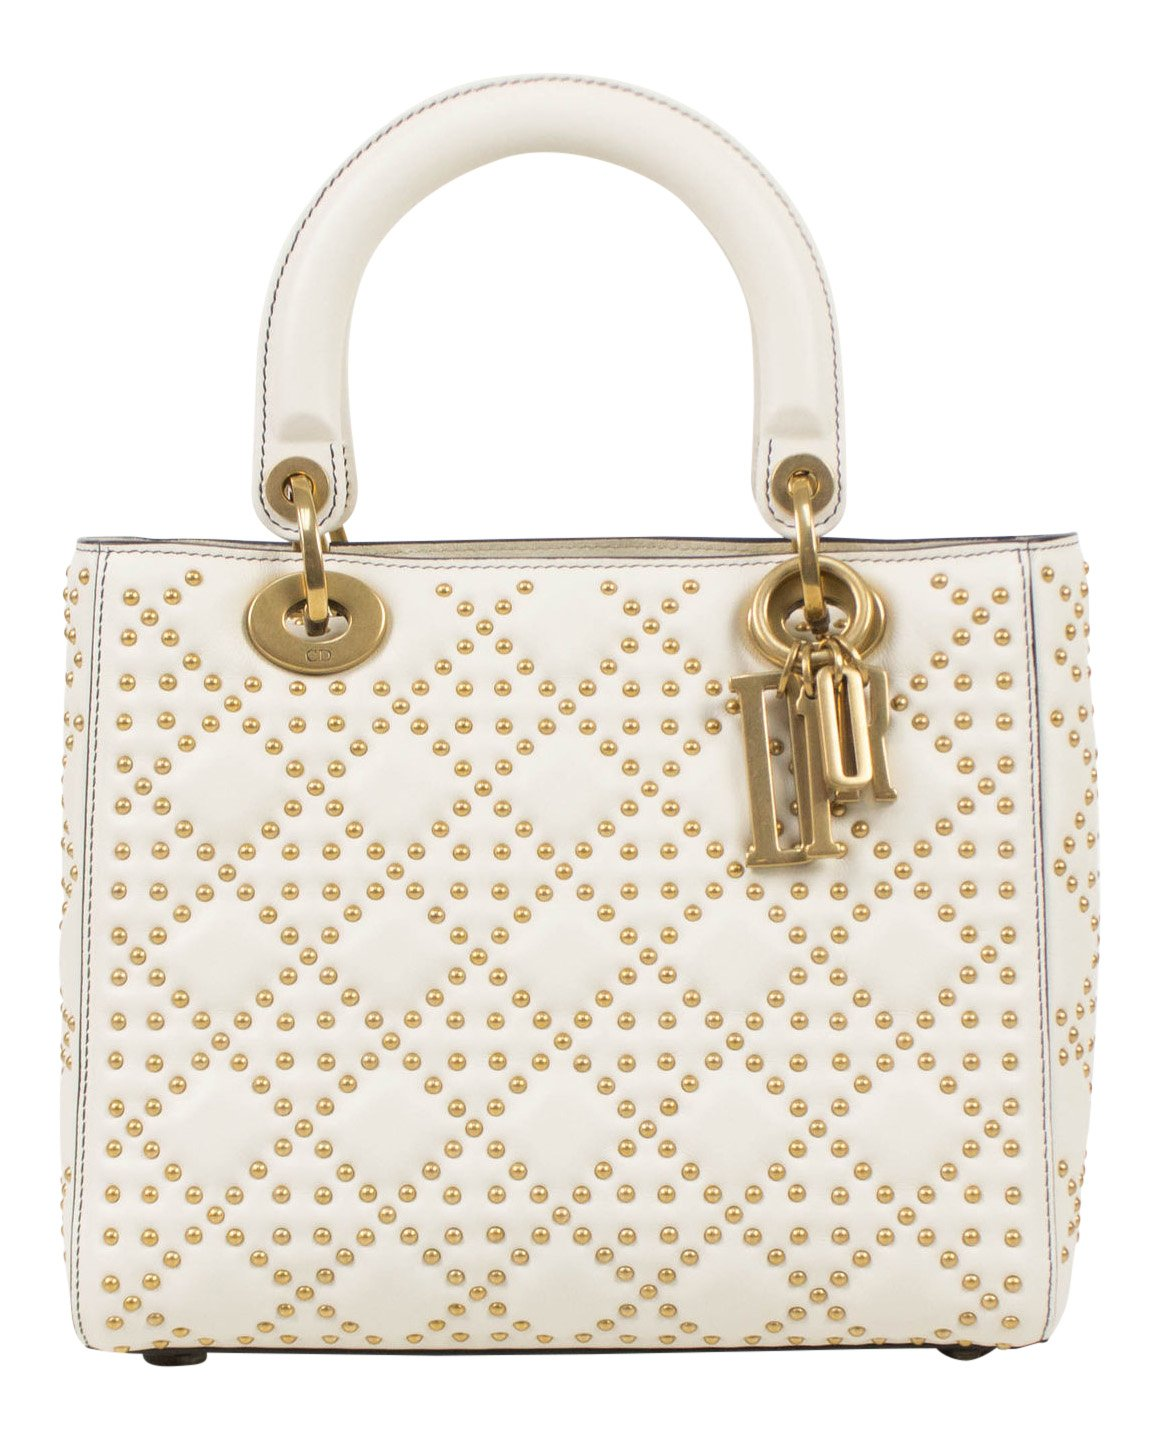 1f141c2bee Amazon.com: Christian Dior Lady Dior White Leather Studded Handbag: Baby